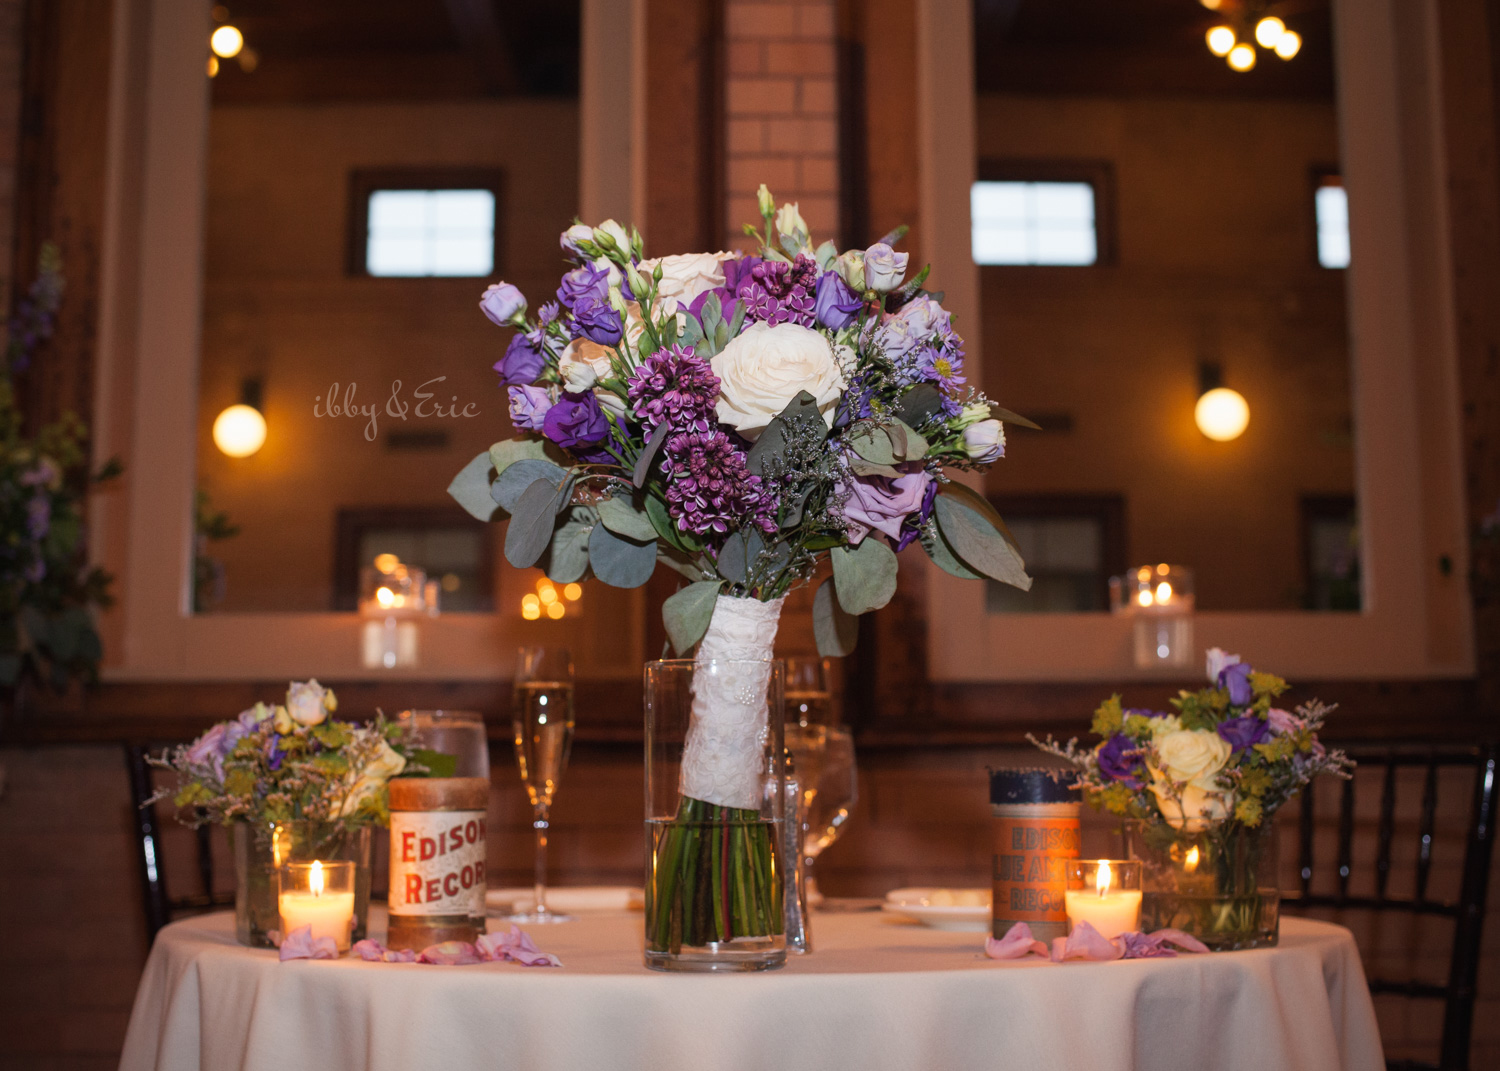 Purple wedding bouquet centerpiece with candles, Edison records, and flowers at Union Station in Northampton, MA.